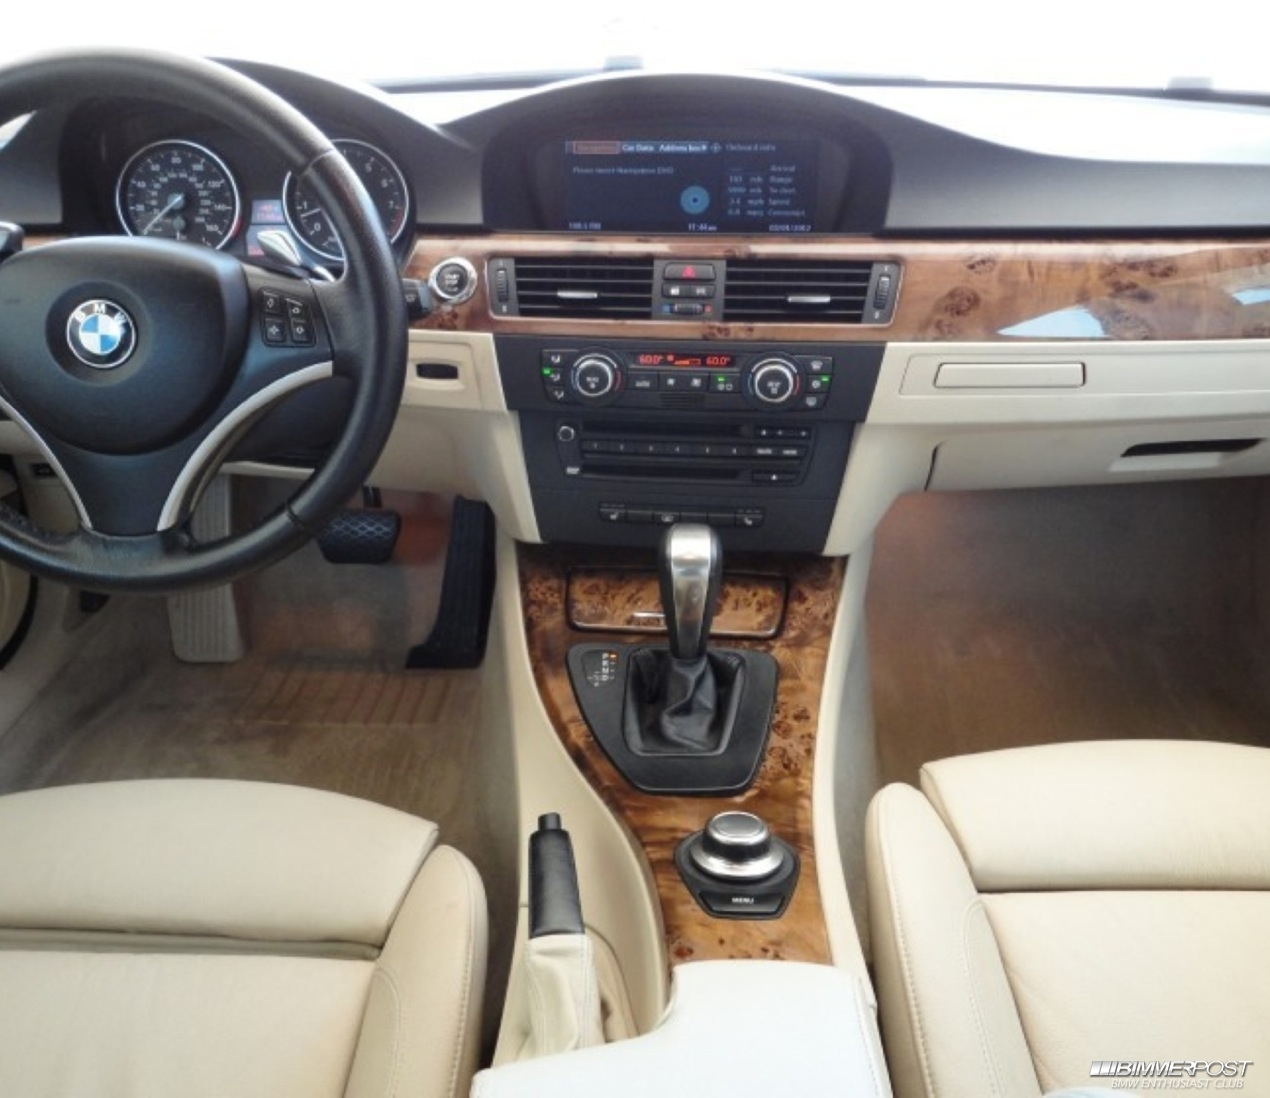 Bmw Z4 Interior Trim: Rrpeinha's 2008 BMW 335i